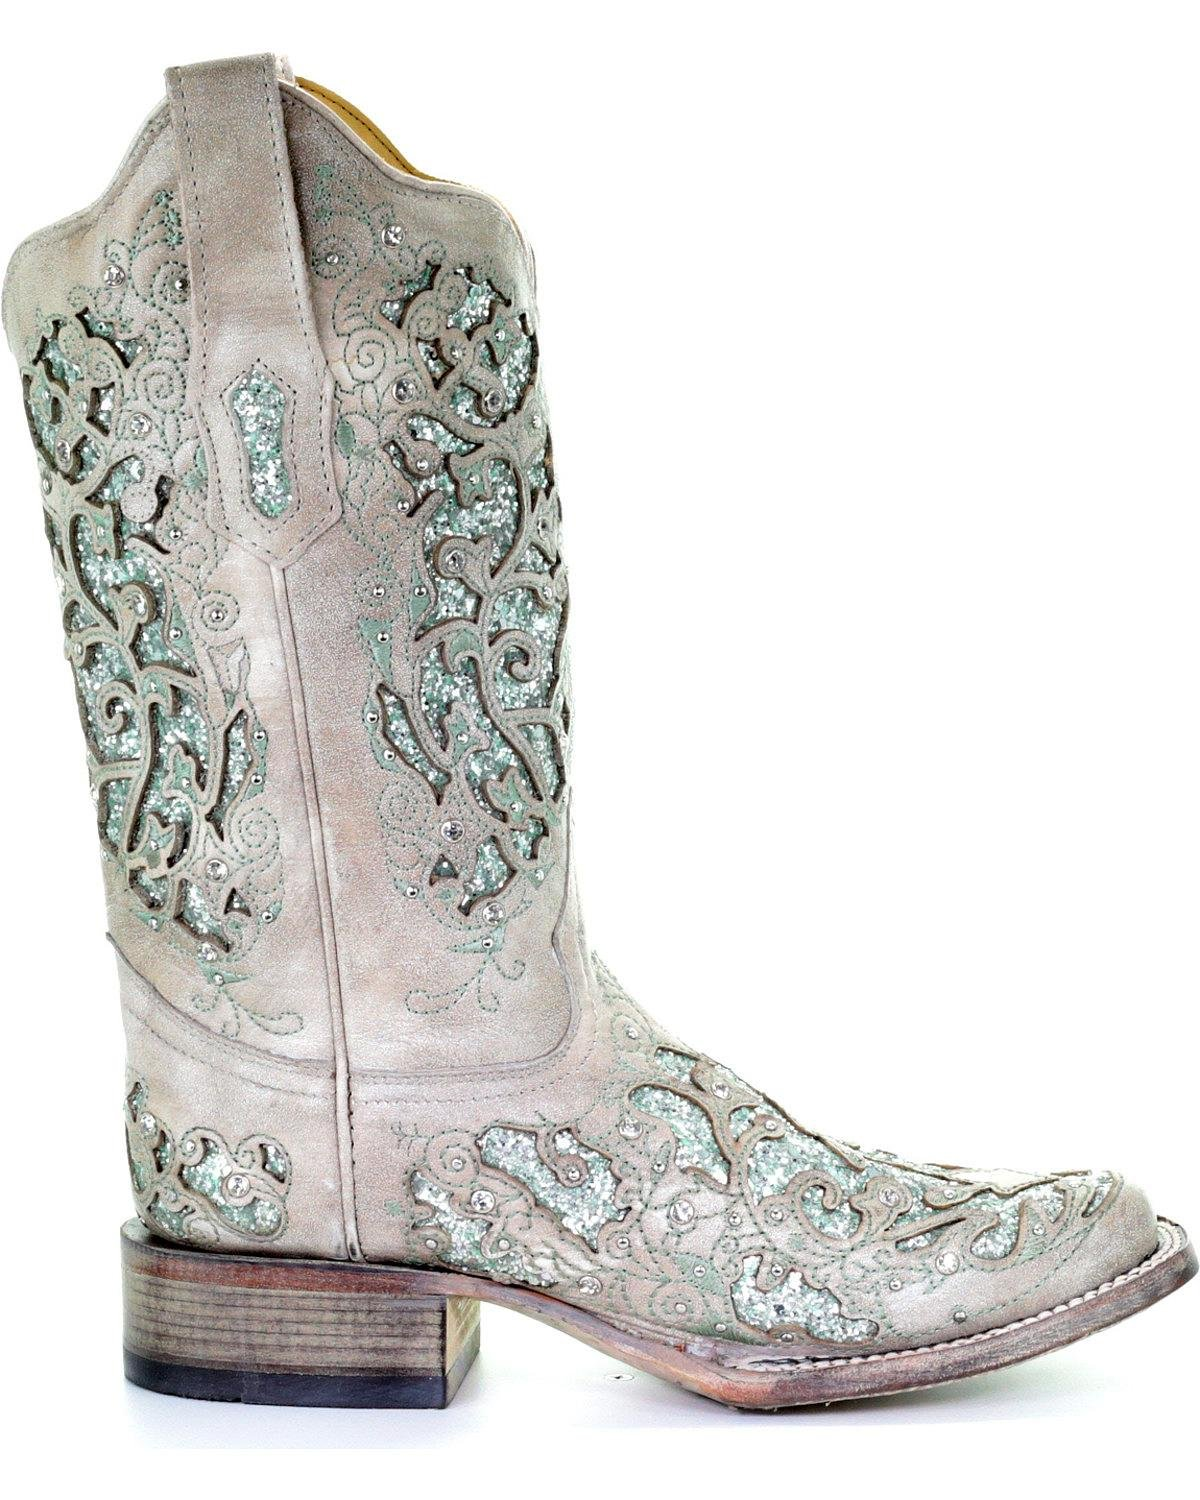 CORRAL Women's Glitter and Crystals Cowgirl Boot Square Toe - A3435 B07B6B3WWL 8 B(M) US|White